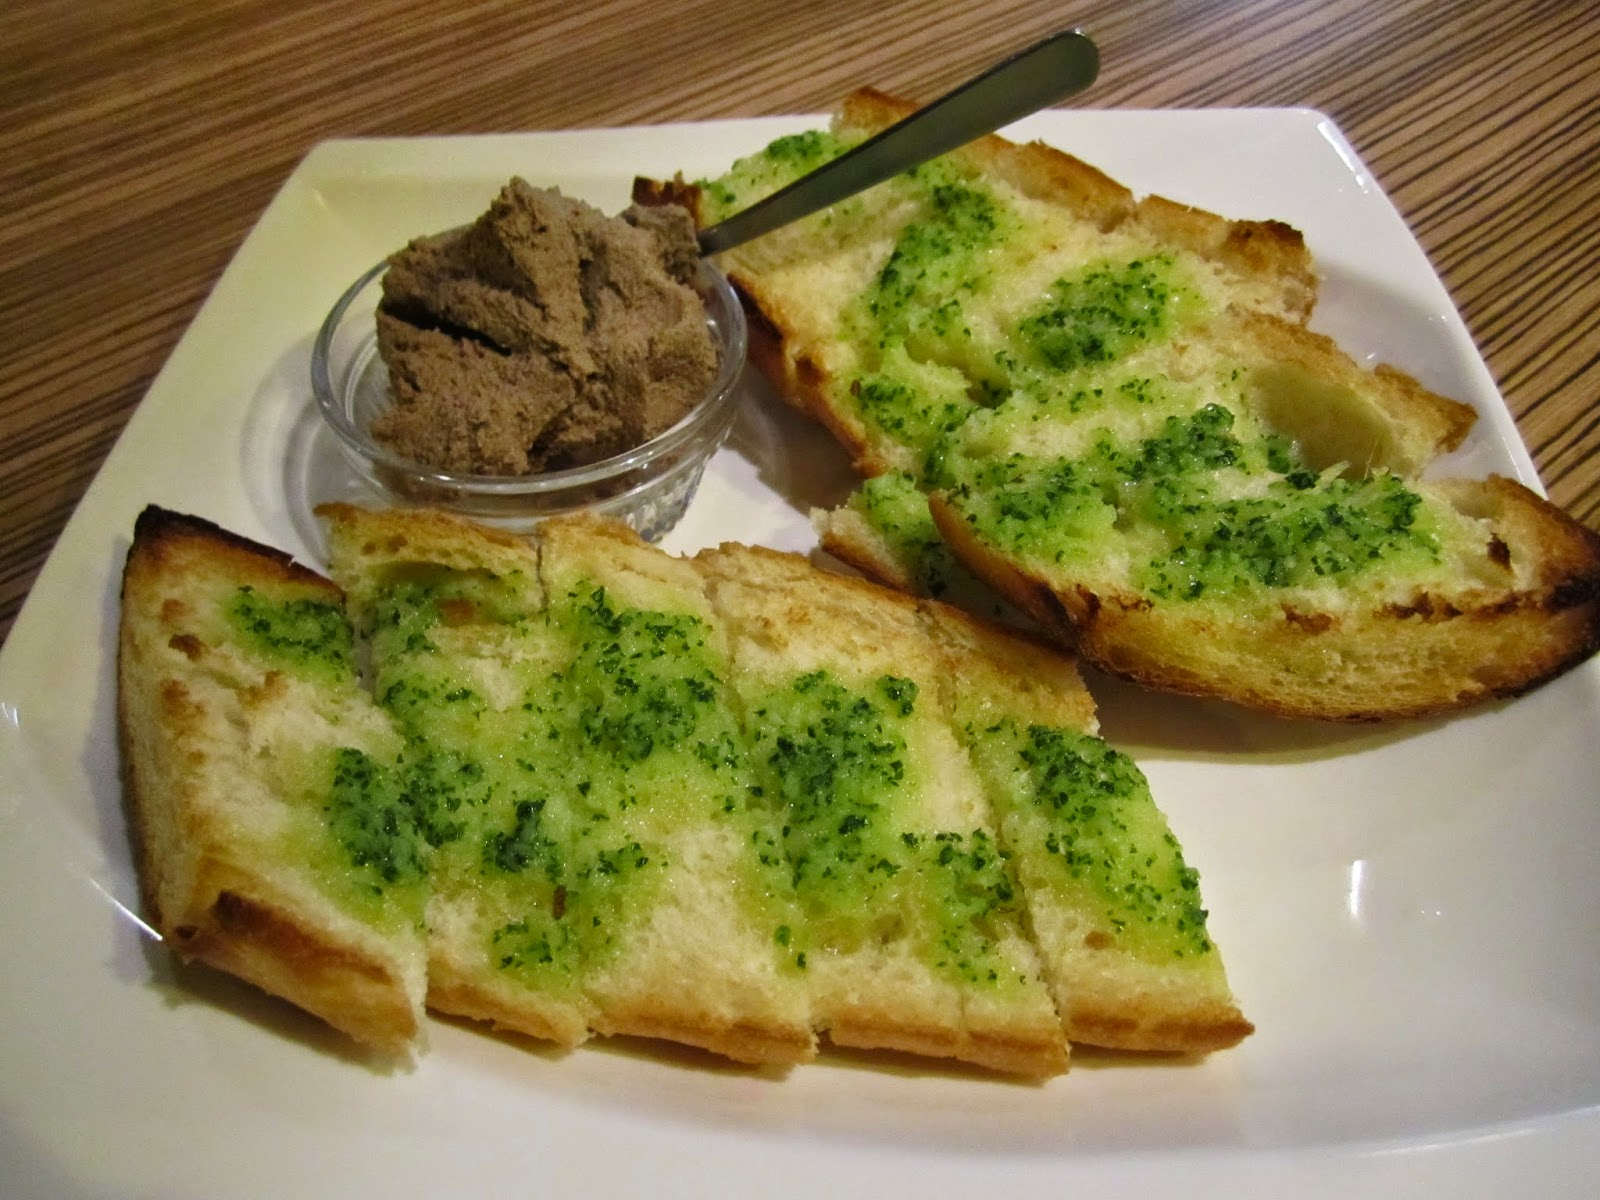 Chicken Liver Paste with Garlic Toast Sette Colore Towada Italian Bar チキンレバーペーストガーリックトースト添え セッテコローレ イタリアンバー 十和田市